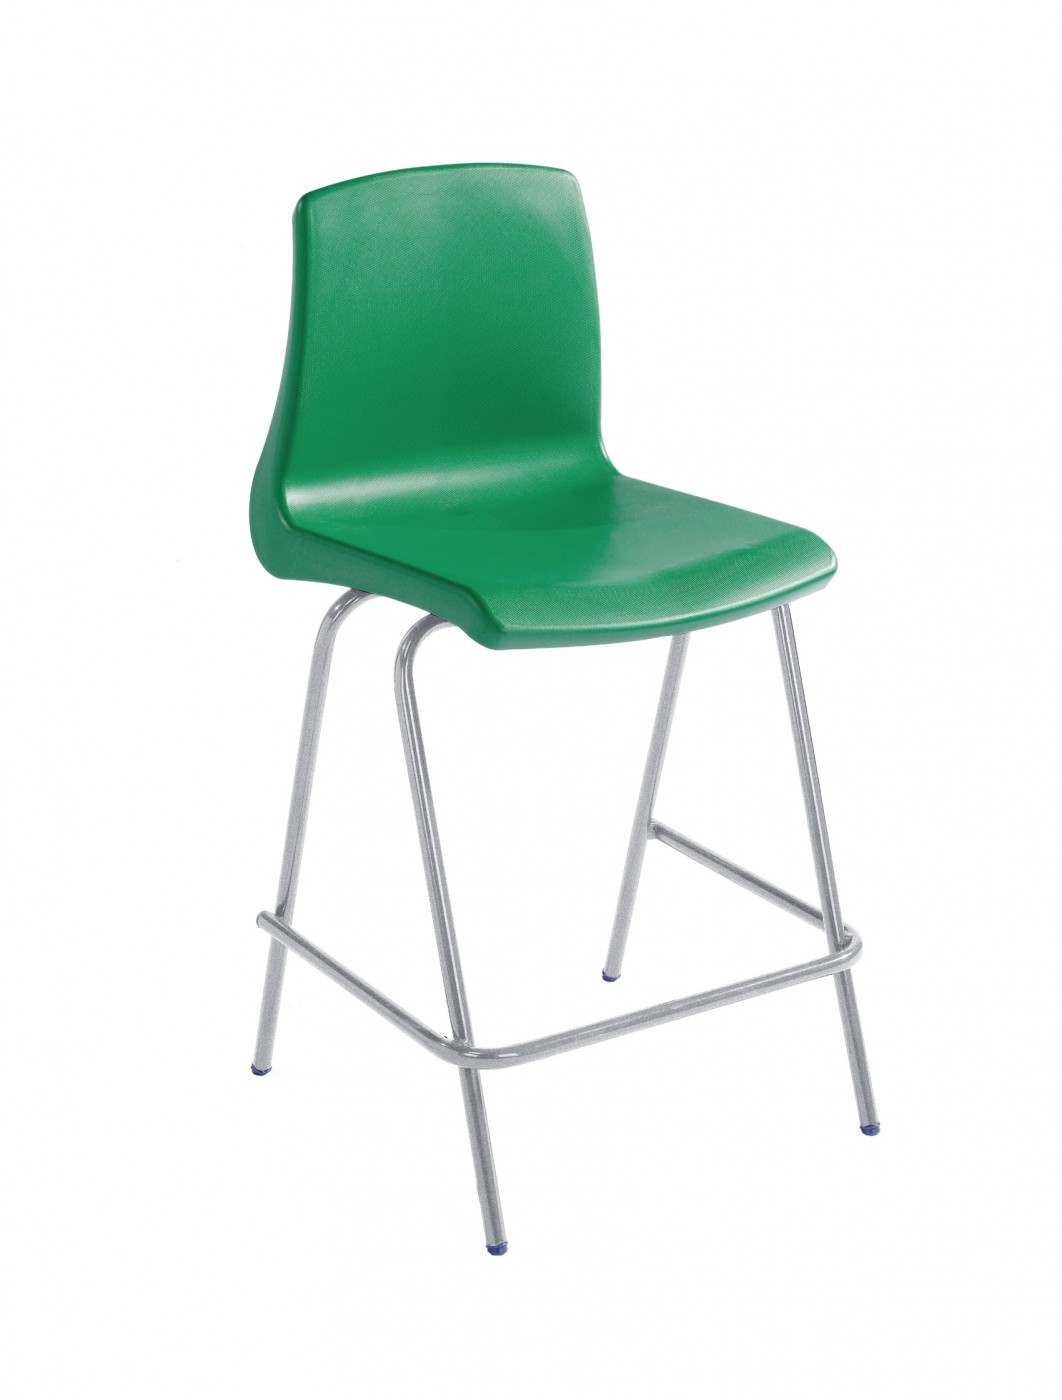 Teacher Chair Metalliform Np Classroom High Chair Np5st4 121 Office